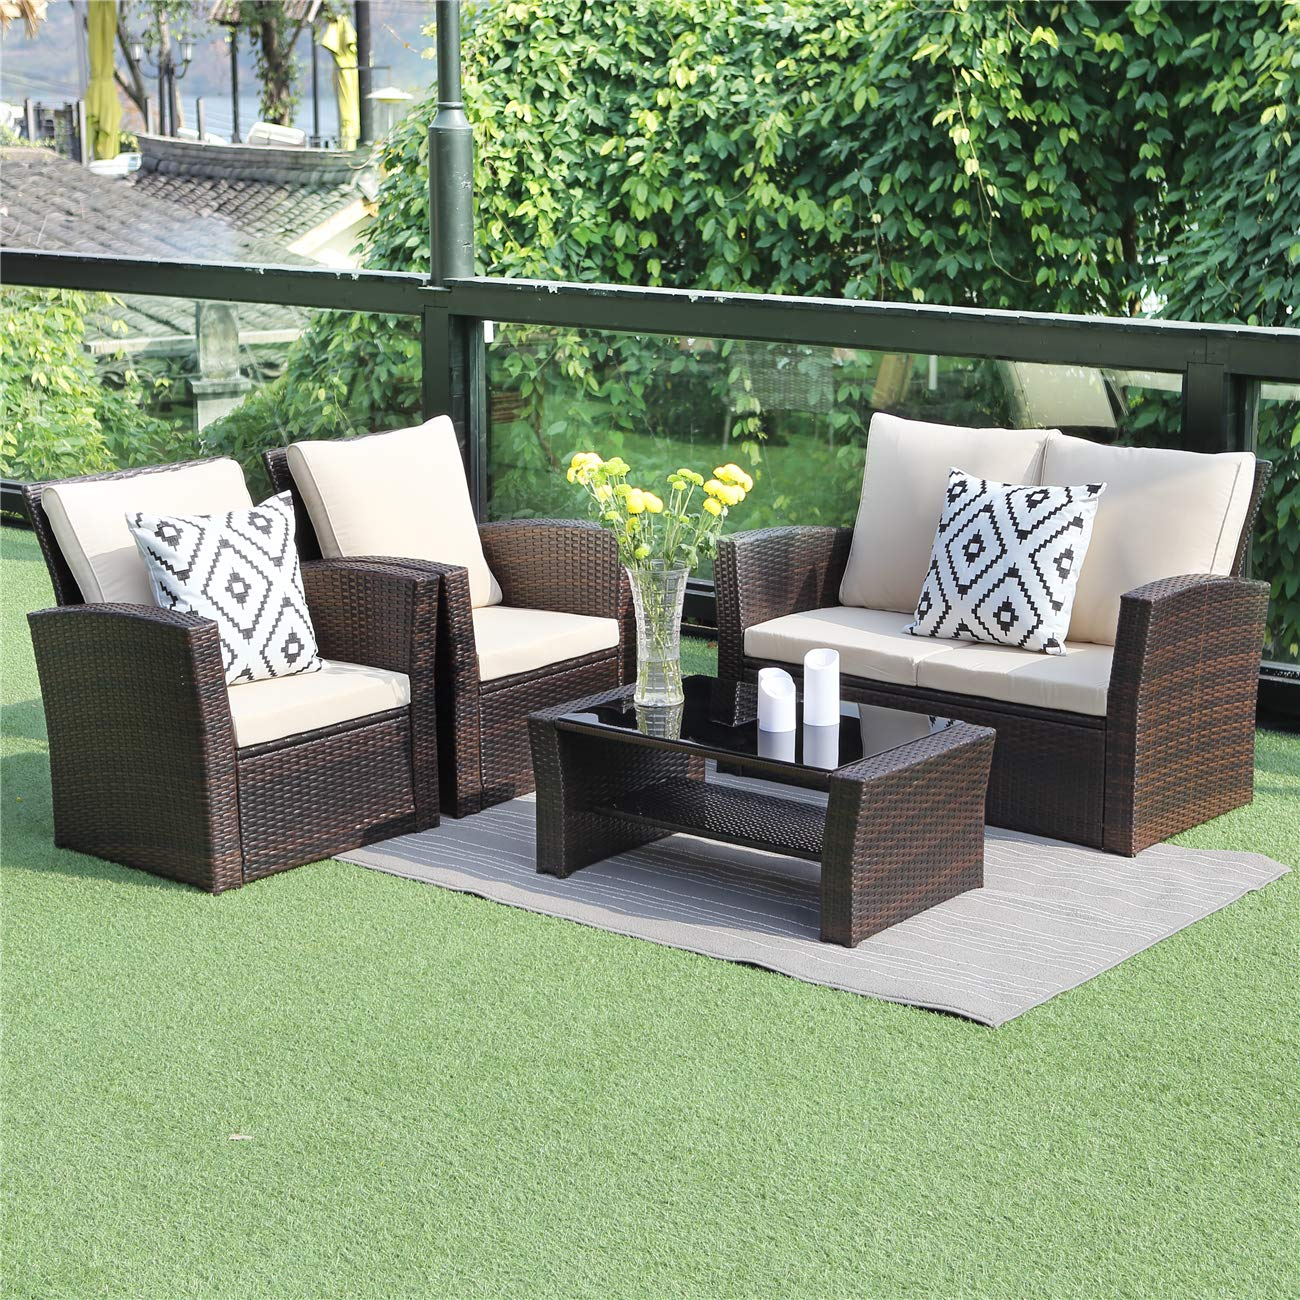 Wisteria Lane 5 Piece Outdoor Patio Furniture Sets, Wicker Ratten Sectional Sofa with Seat Cushions,Brown by Wisteria Lane